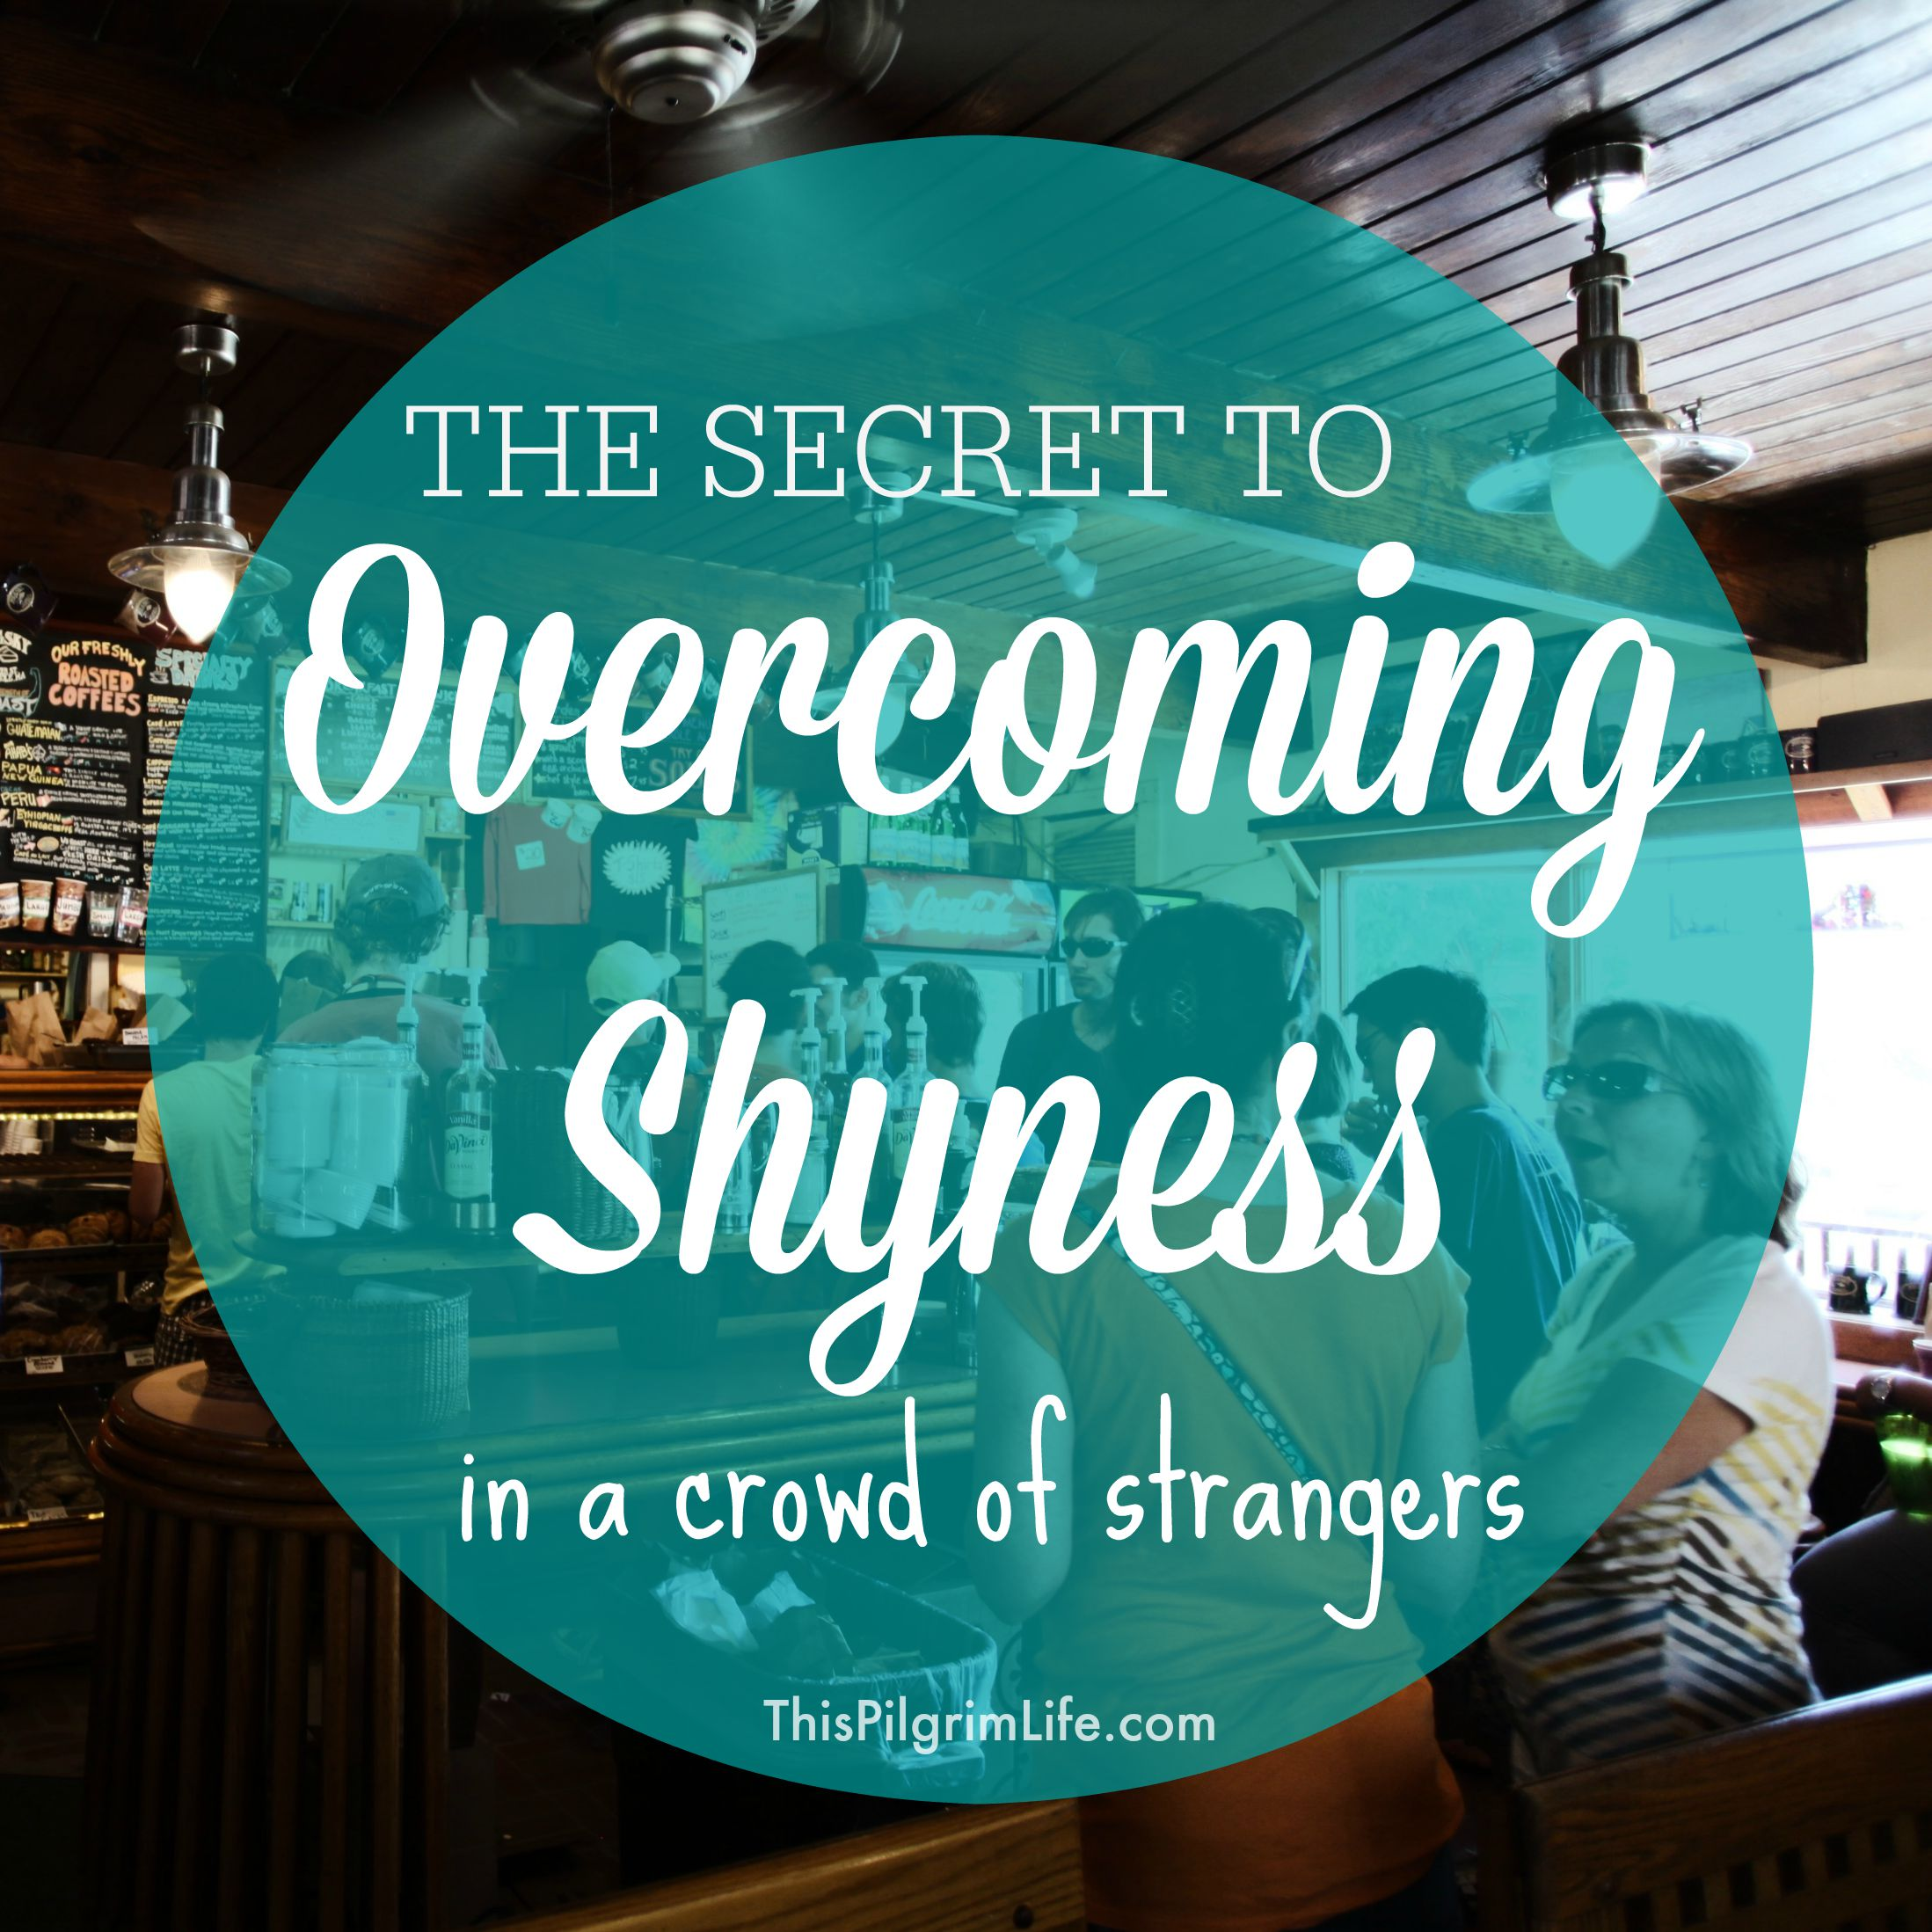 I used to hide in the bathroom to avoid mingling with people I didn't know, but I've since learned how to overcome shyness when in a crowd of strangers.